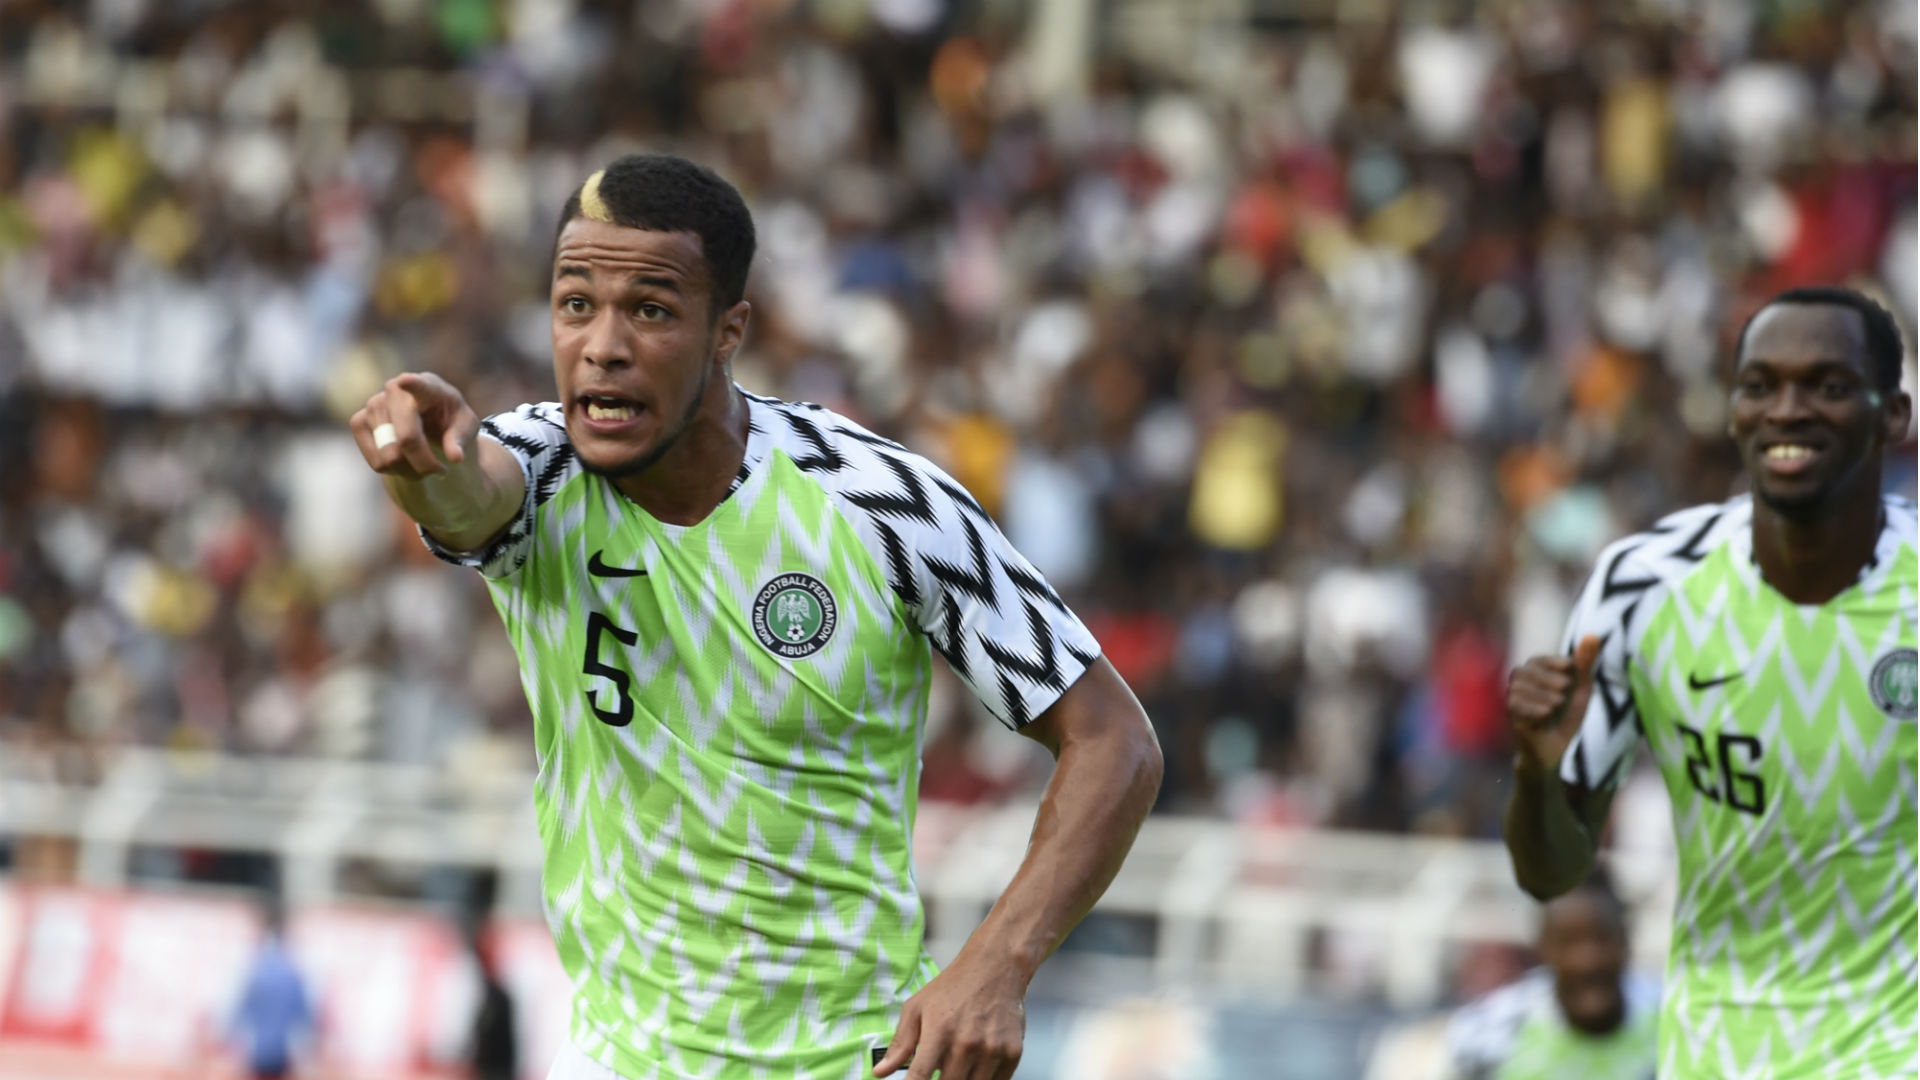 Sunday Oliseh's criticism helped me improve, reveals Troost-Ekong